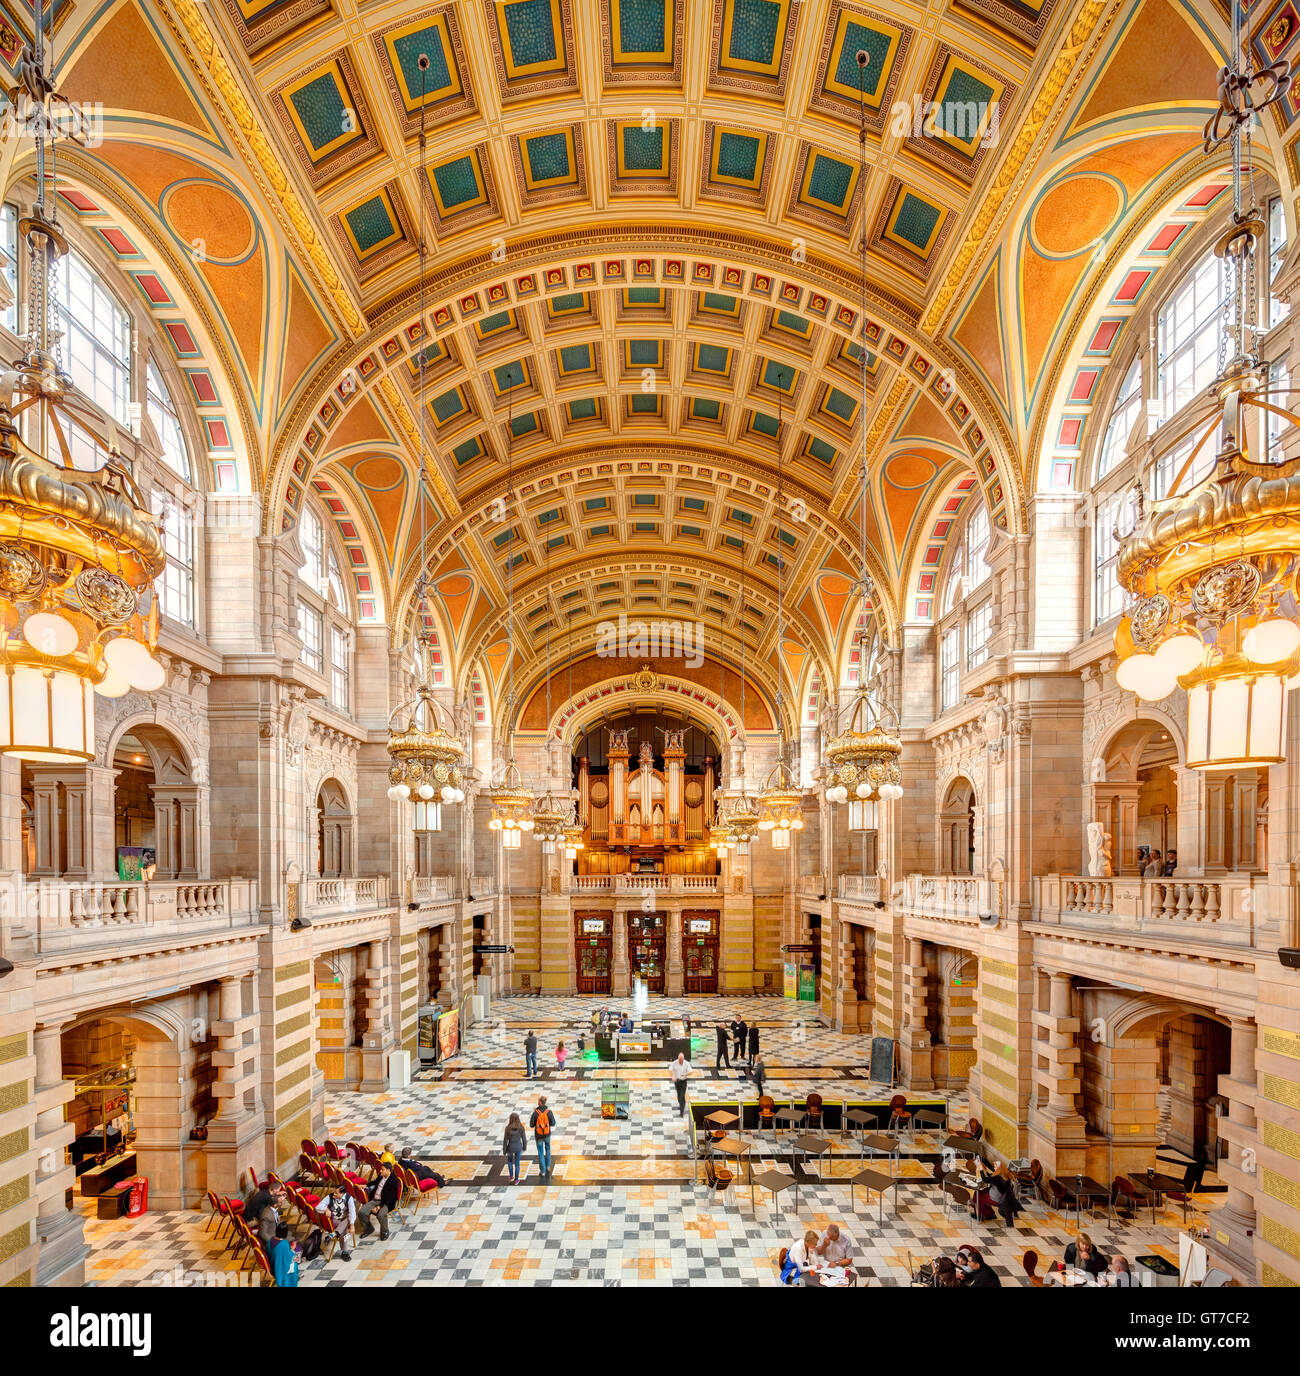 https://c7.alamy.com/comp/GT7CF2/glasgow-kelvingrove-art-gallery-and-museum-interior-central-hall-and-GT7CF2.jpg